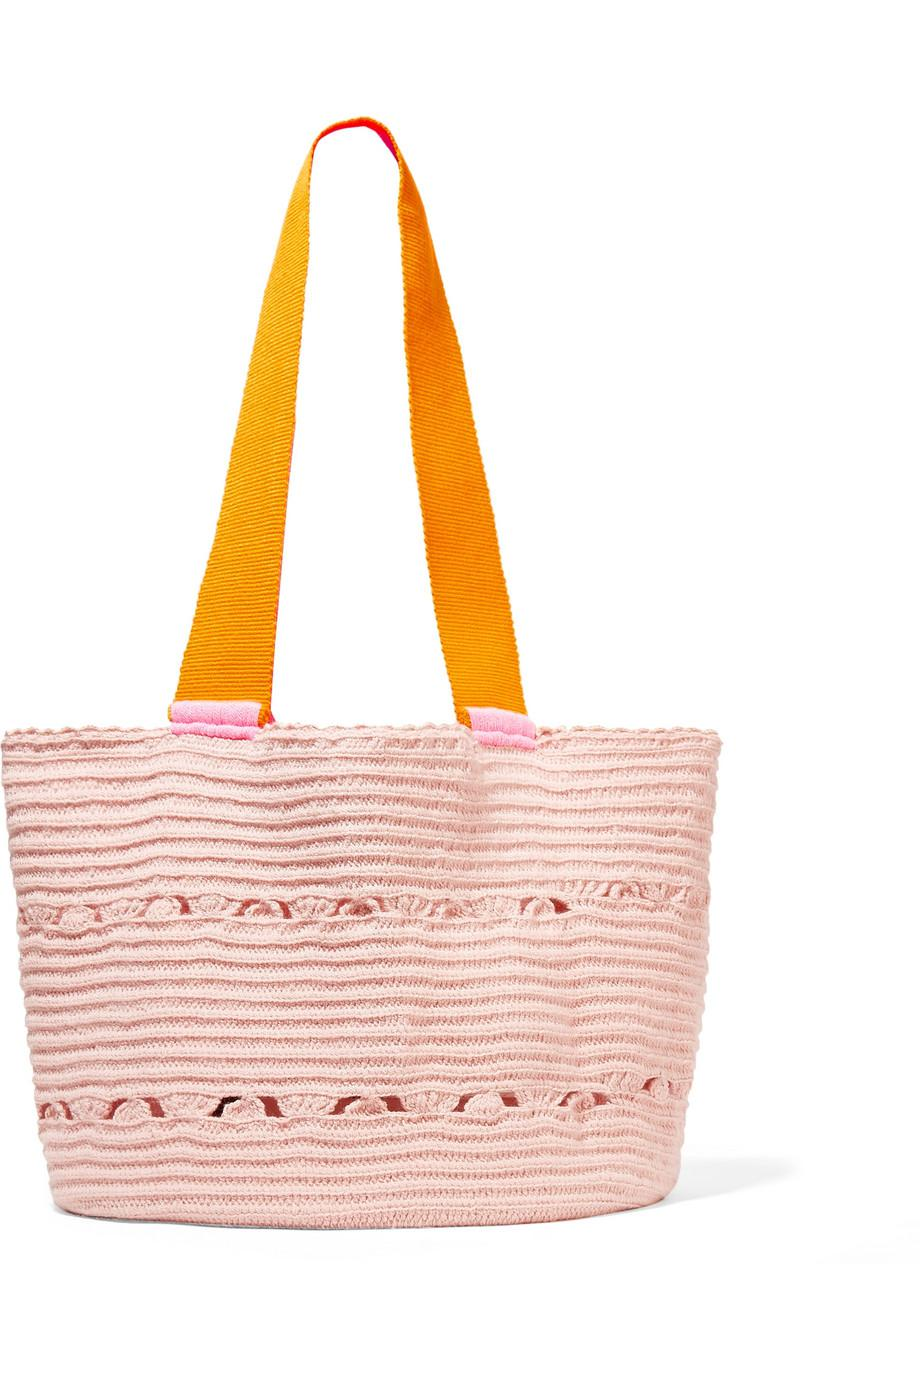 Hoya Woven Tote - Blush Sophie Anderson iCVhPJj7